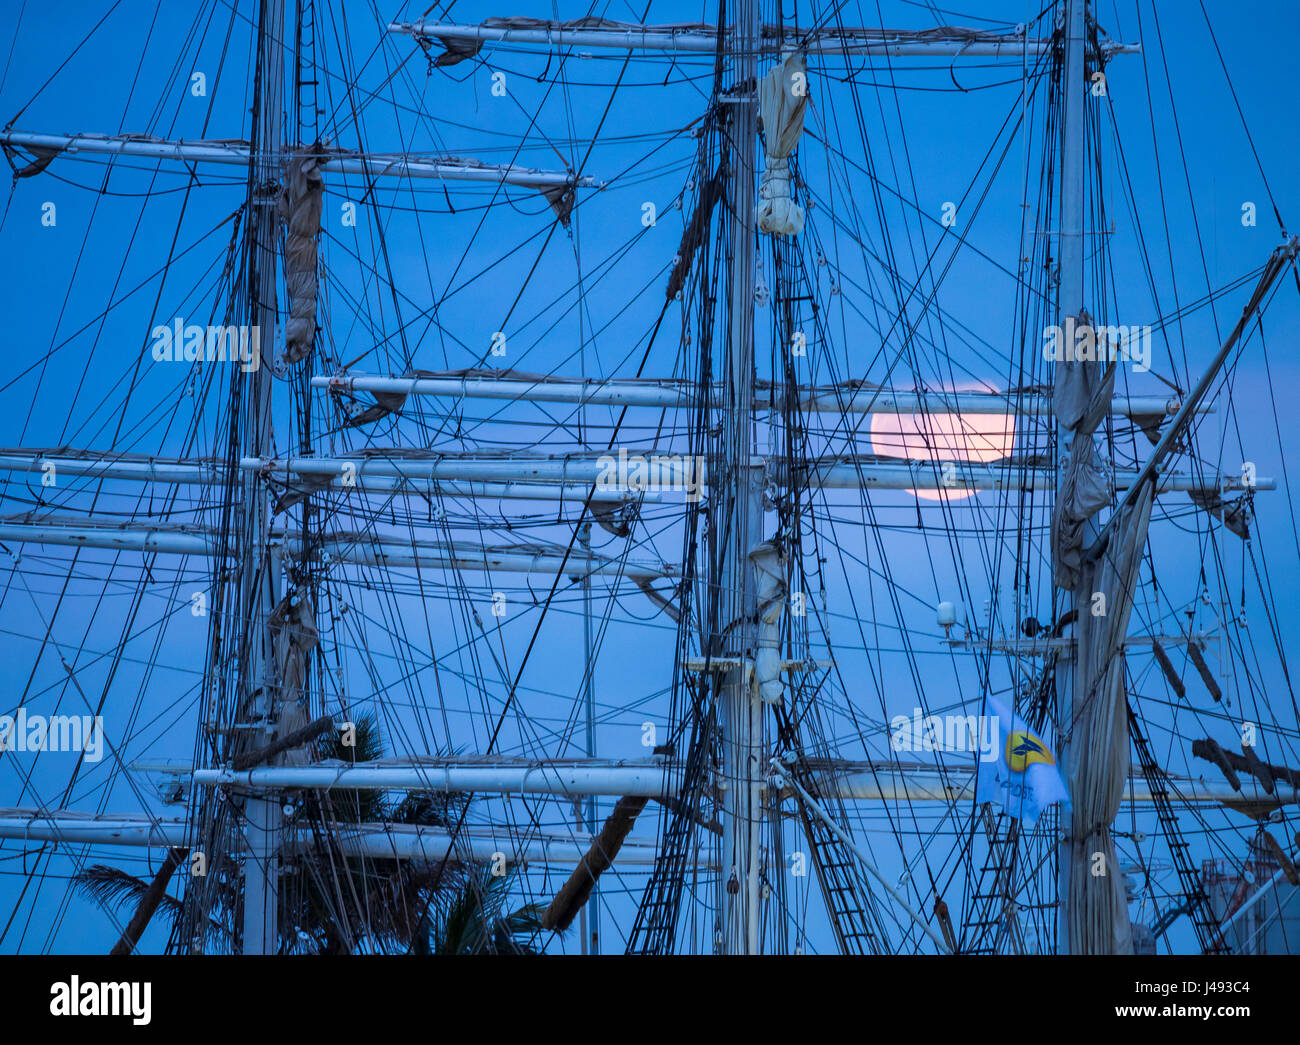 Las Palmas, Gran Canaria, Canary Islands, Spain, 10th May 2017.  The full Moon rises behind the rigging of Tall - Stock Image